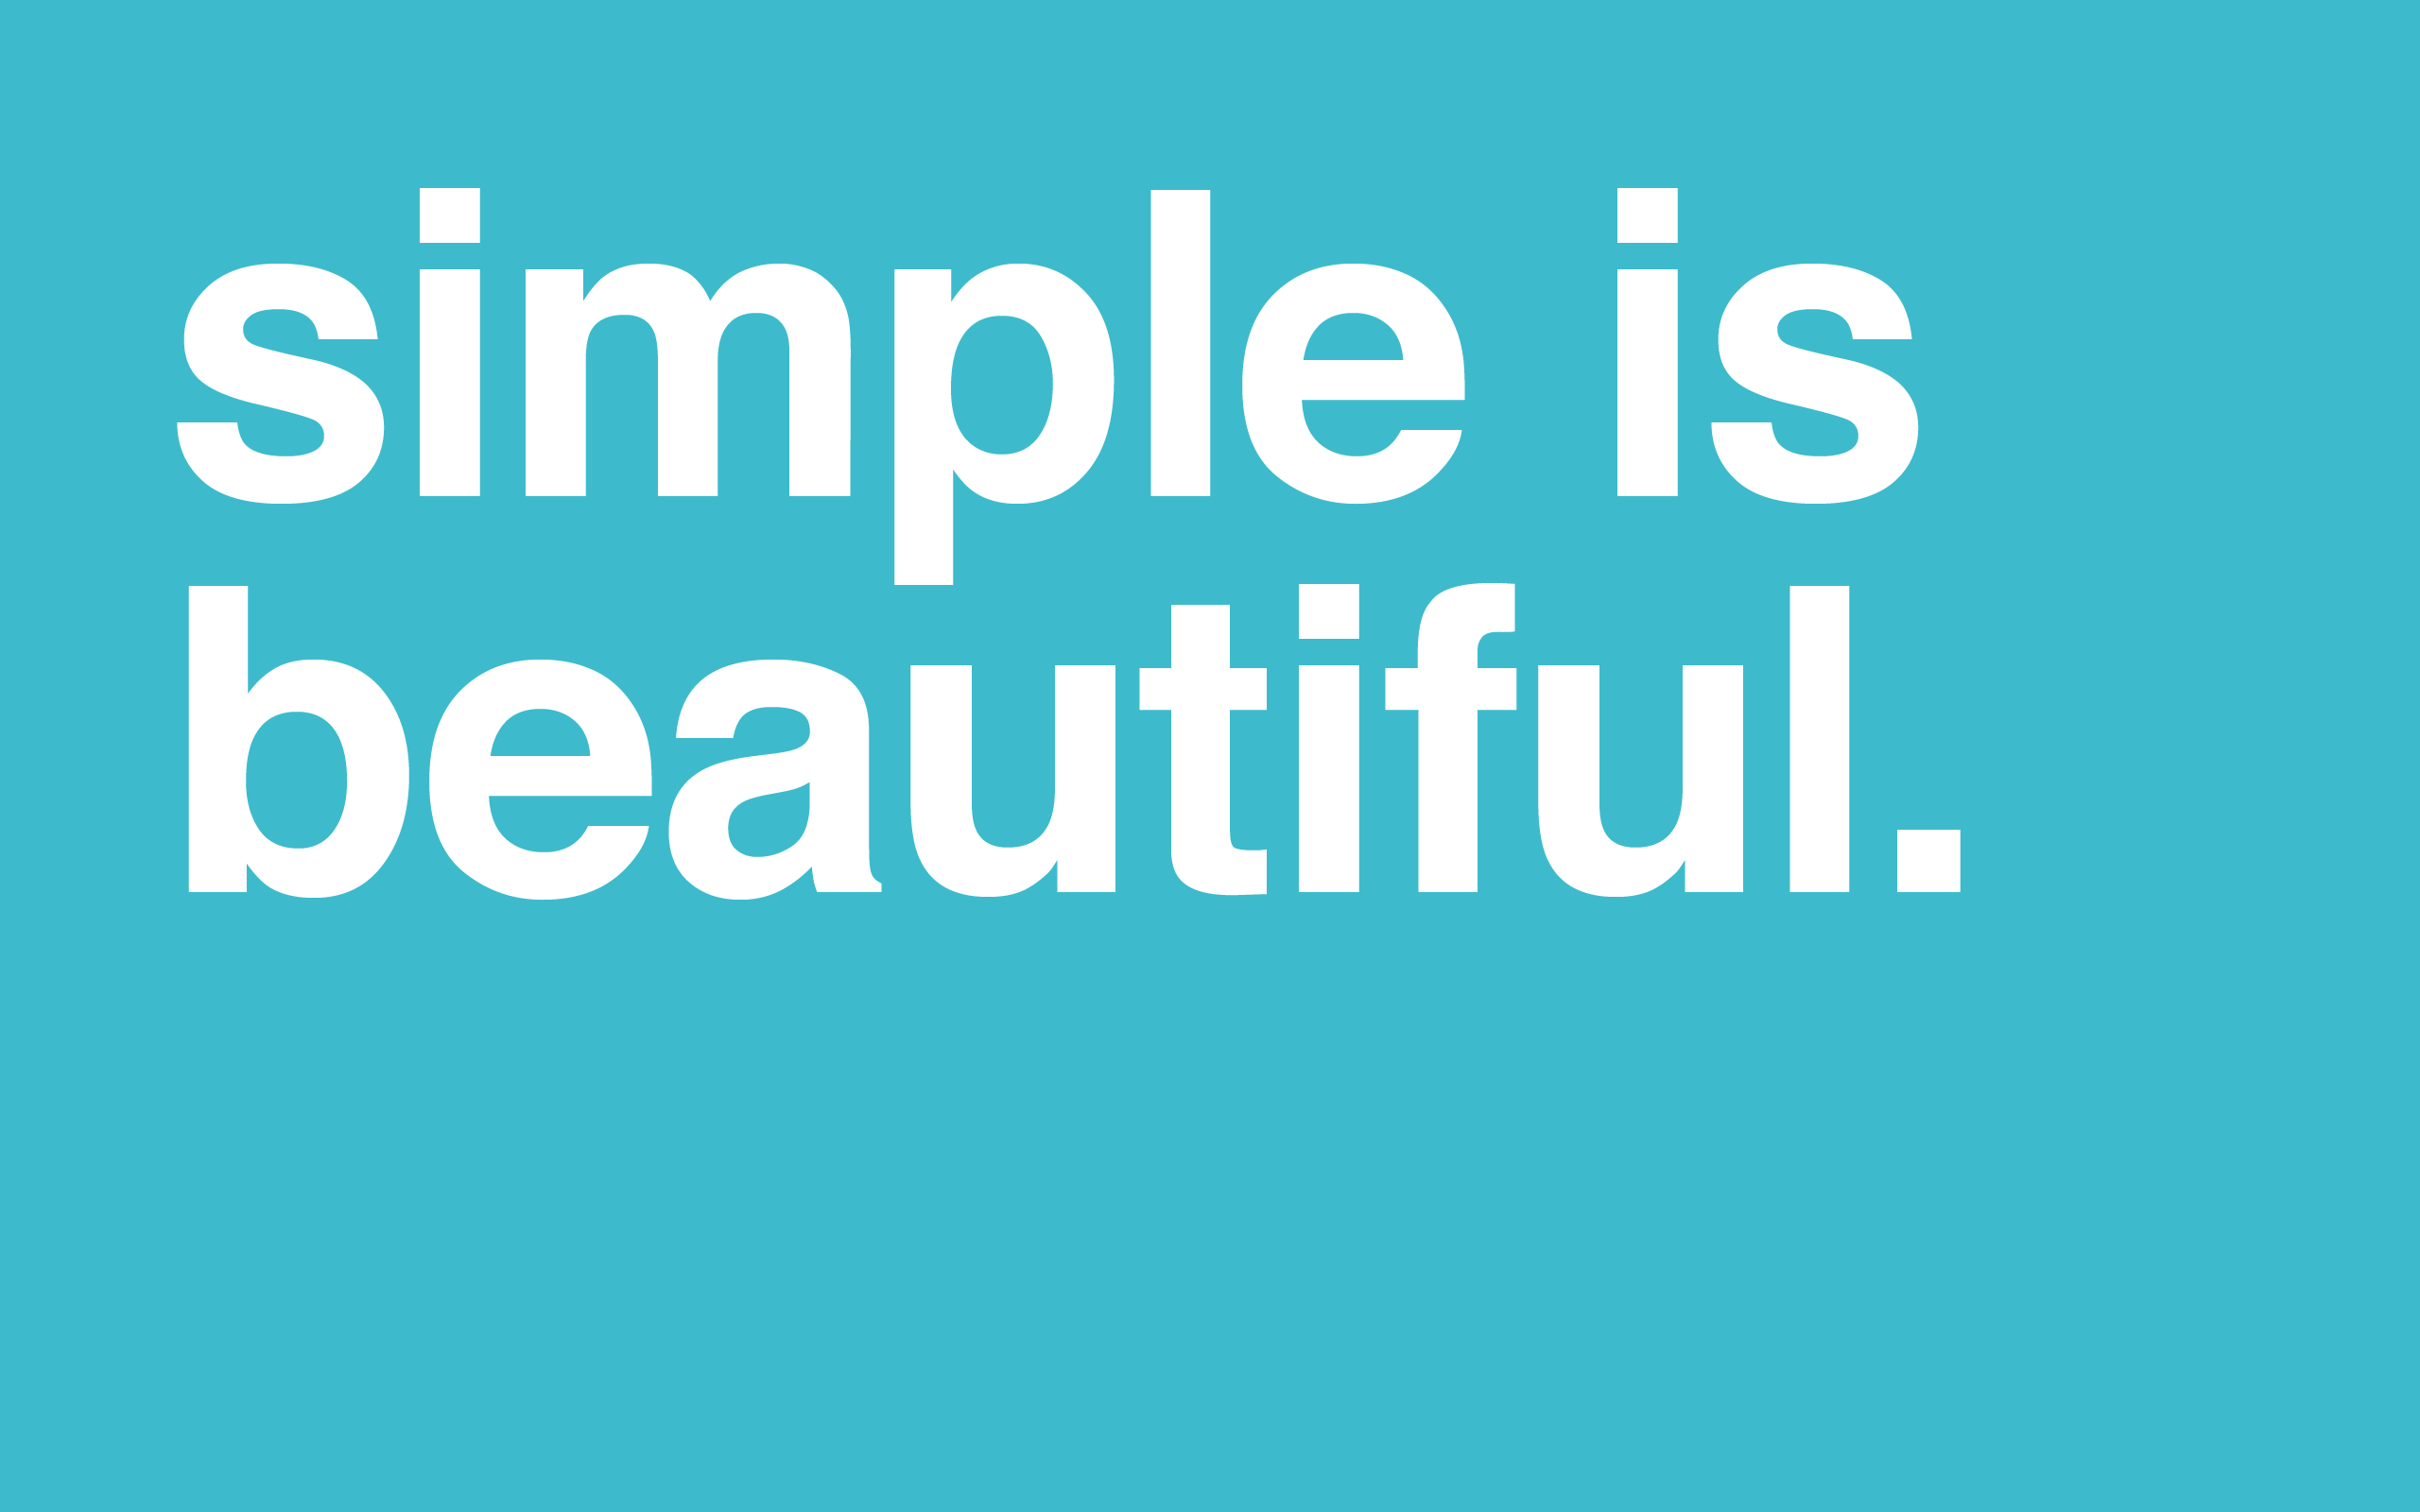 because simple is beautiful.